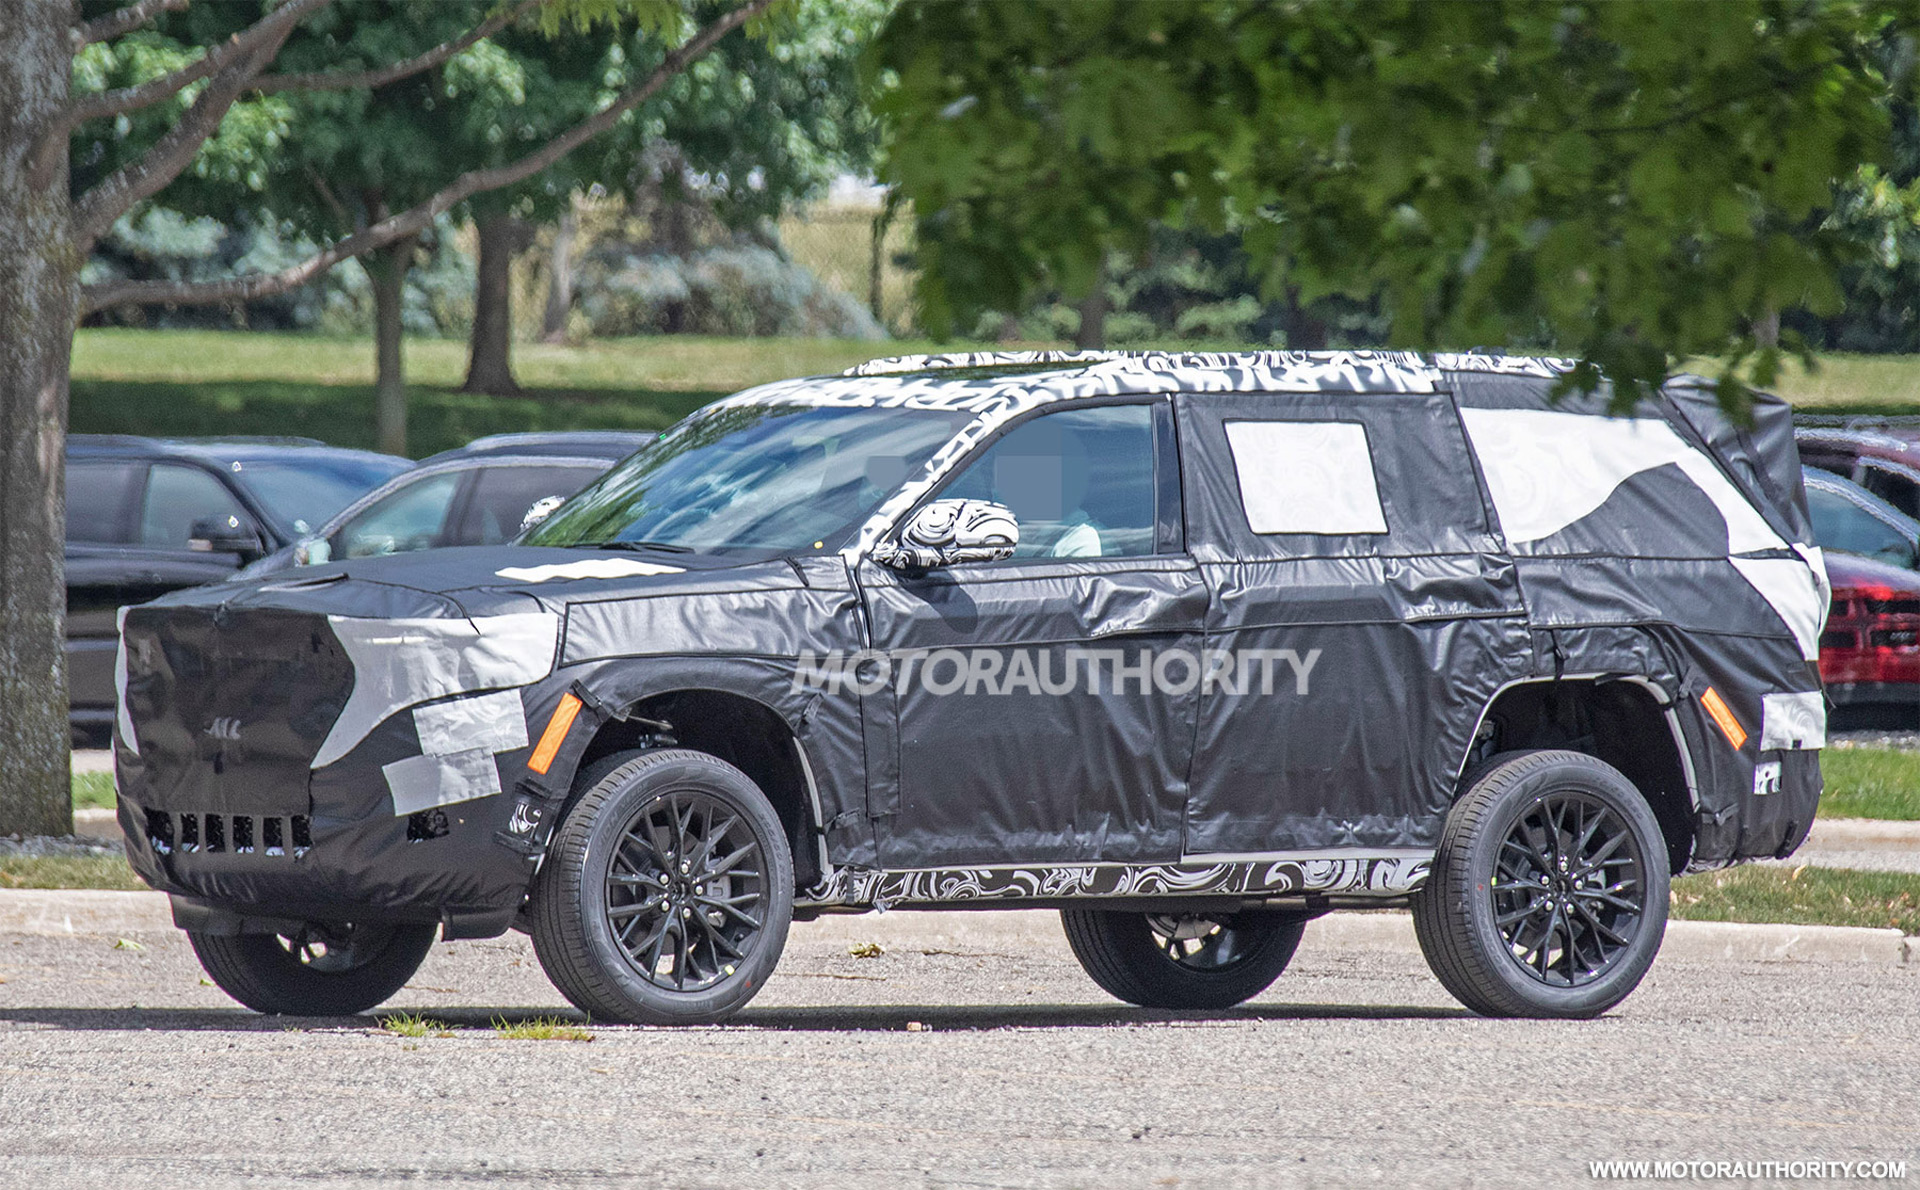 2021 - [Jeep] Grand Cherokee  - Page 2 2022-jeep-grand-cherokee-based-3-row-suv-spy-shots--photo-credit-s-baldauf-sb-medien_100754585_h